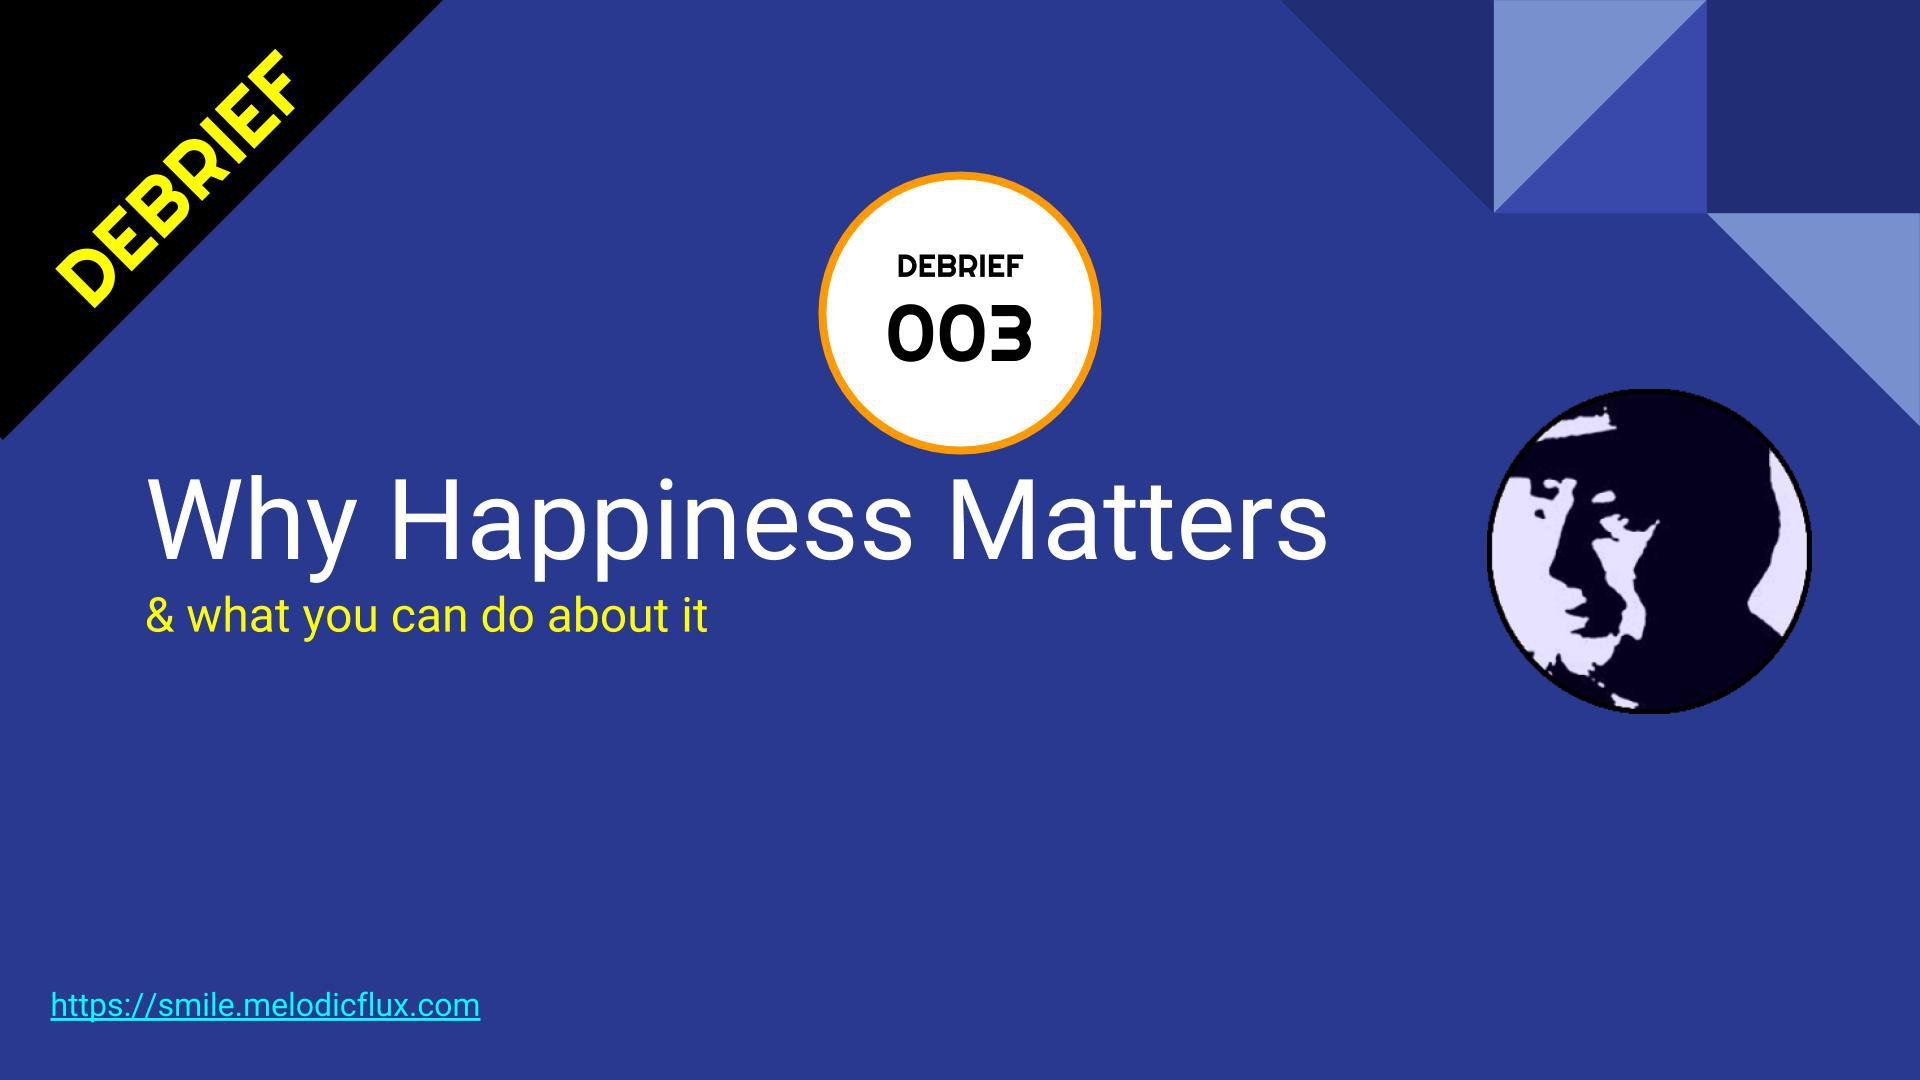 DEBRIEFING 3 - Why Happiness Matters & What to do about it - Episode 3